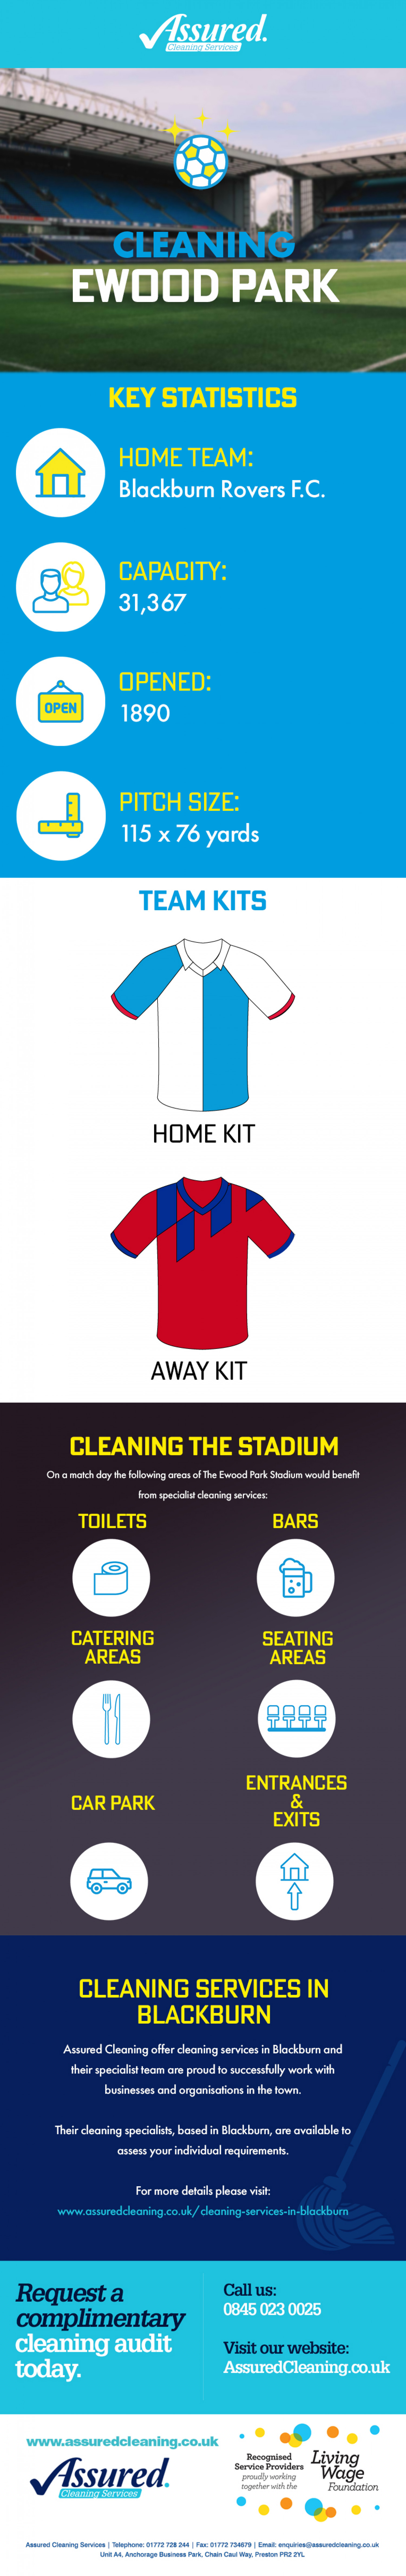 Cleaning Ewood Park Infographic